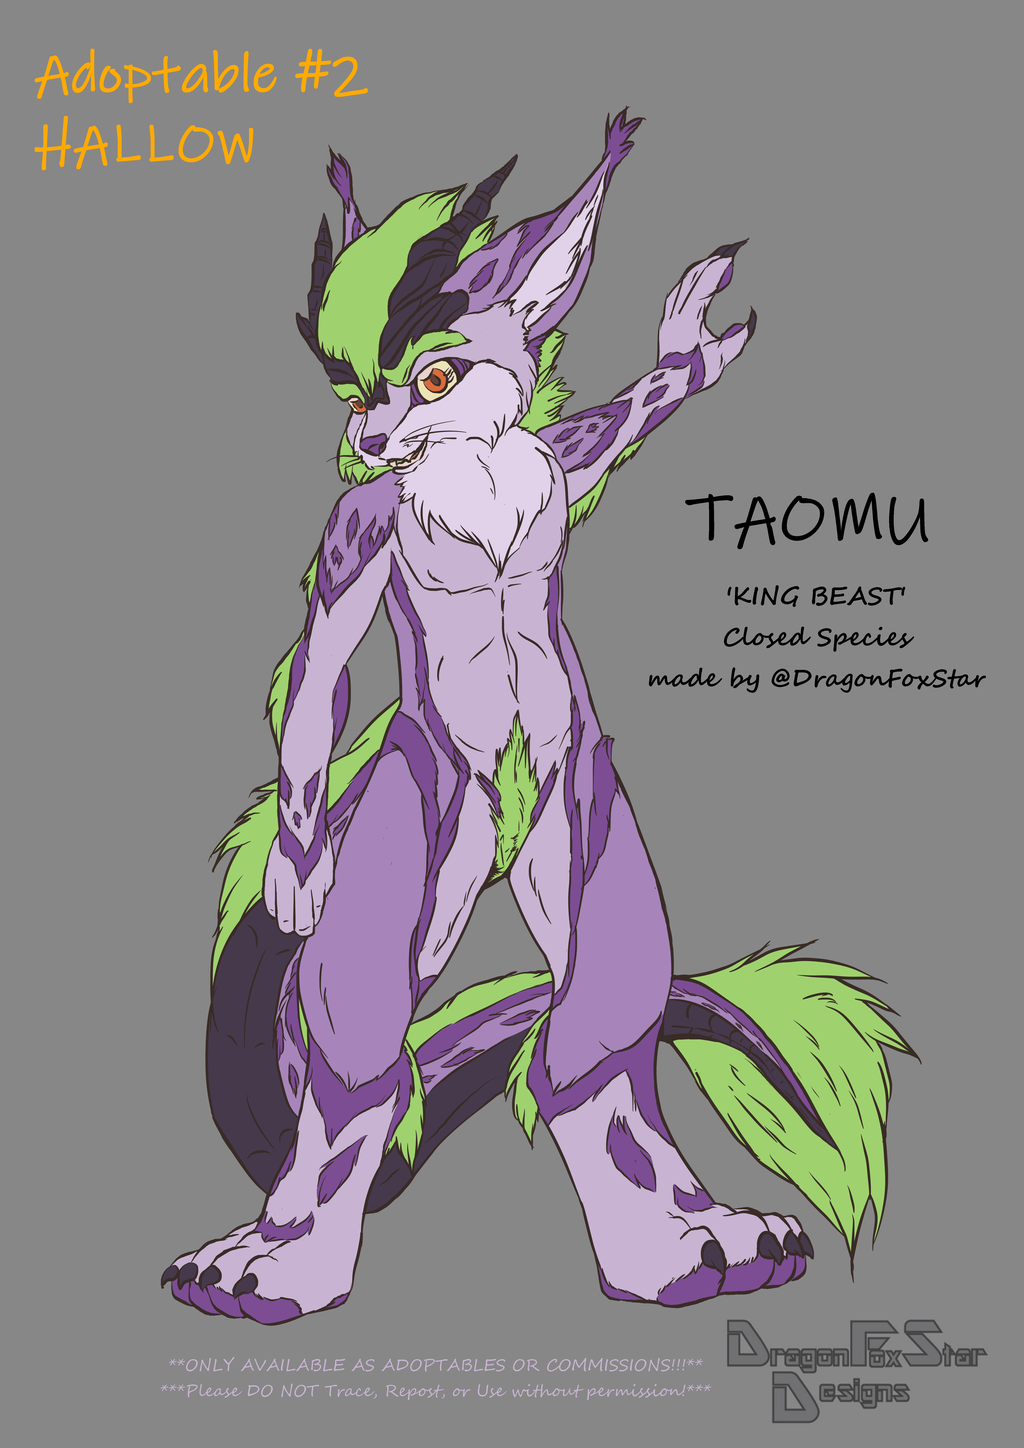 Most recent image: TAOMU (Closed Species) - Adoptable #2 Hallow